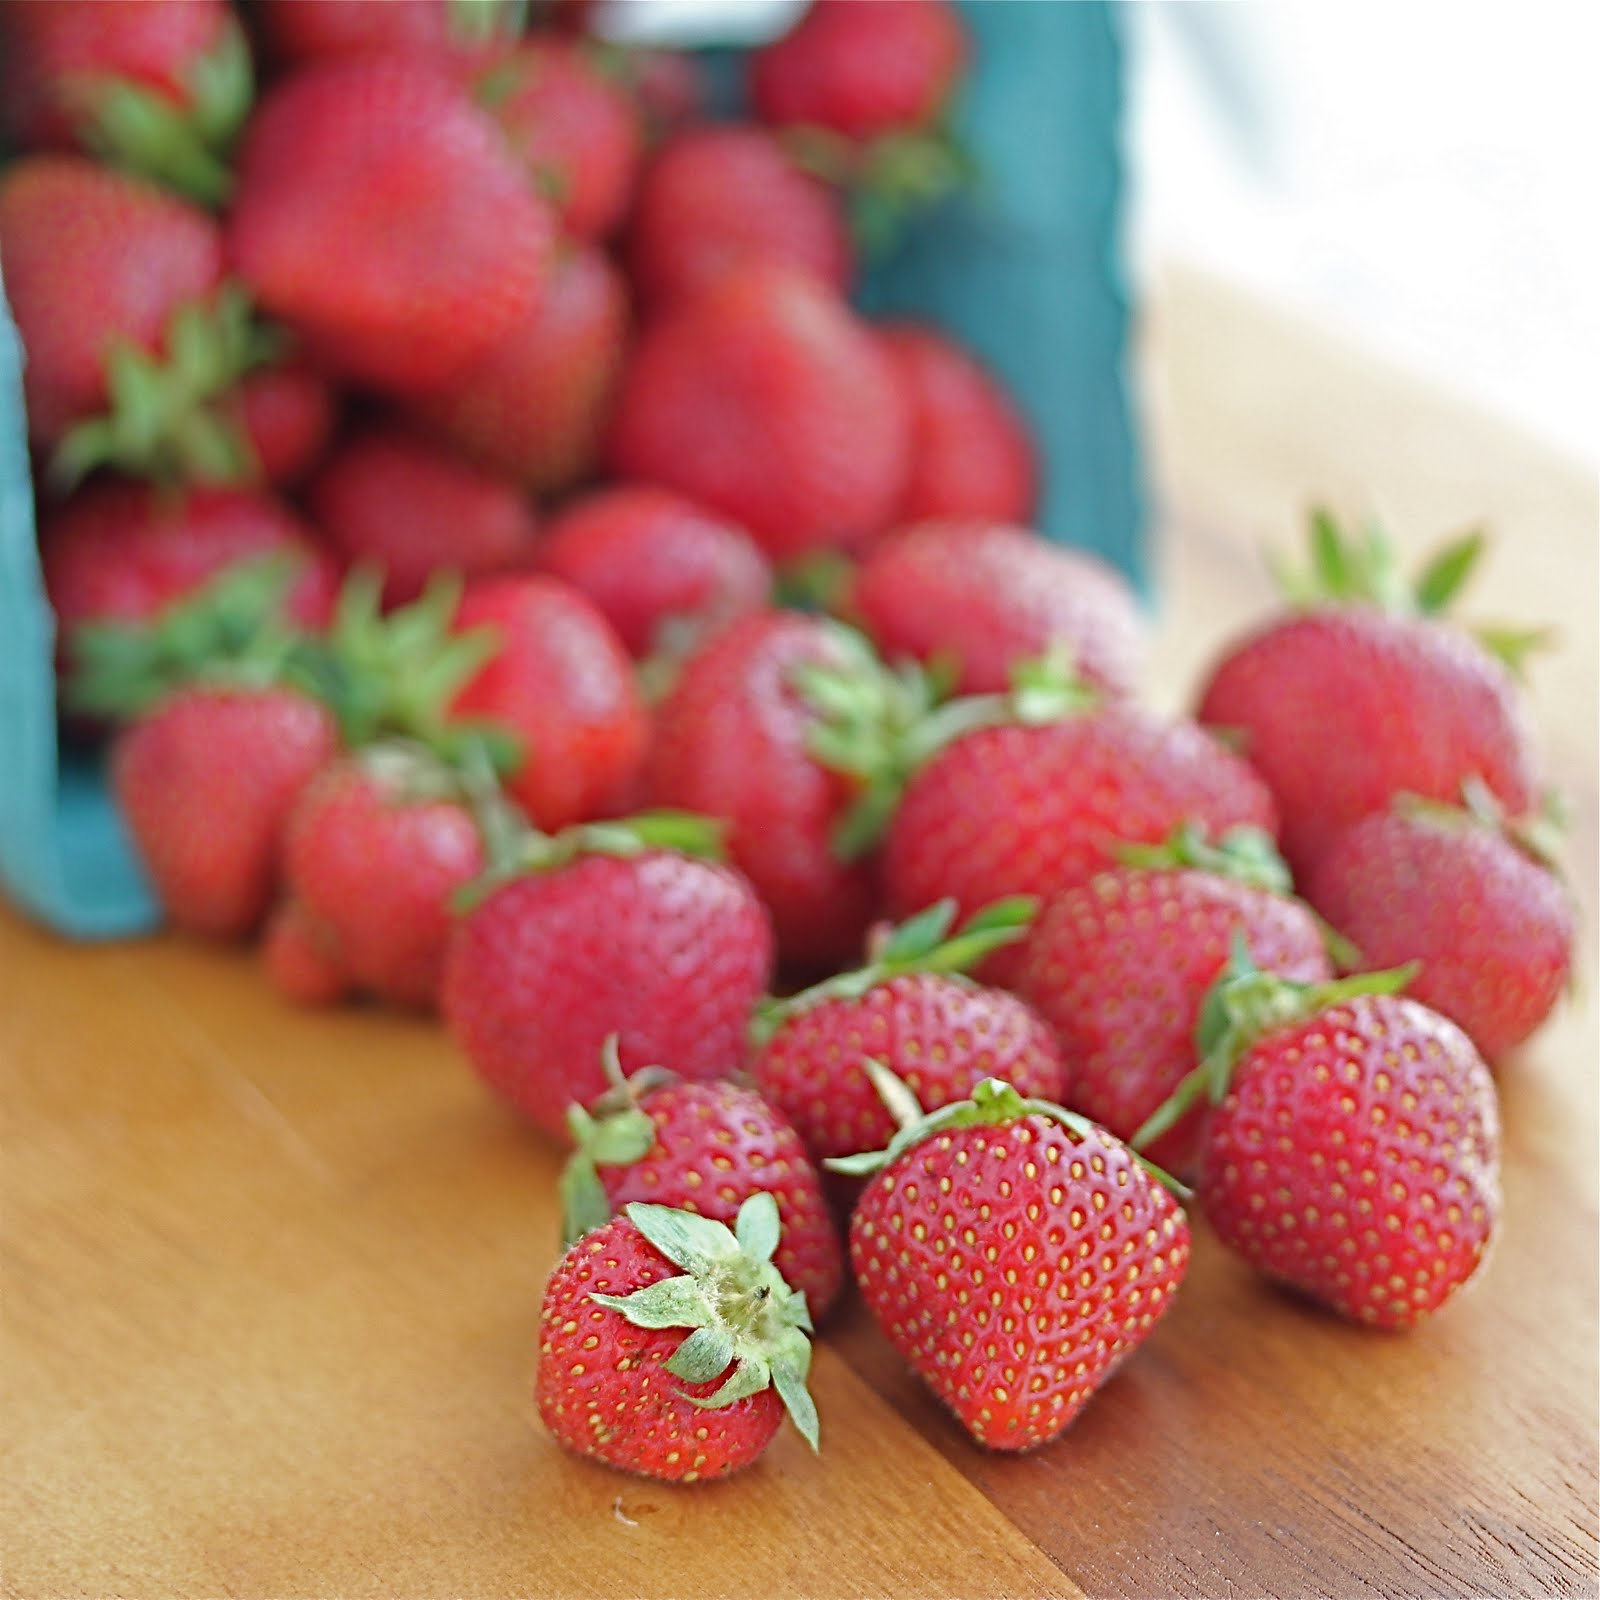 Fresh, local strawberries picked the same day were the jewel in this week's CSA box.